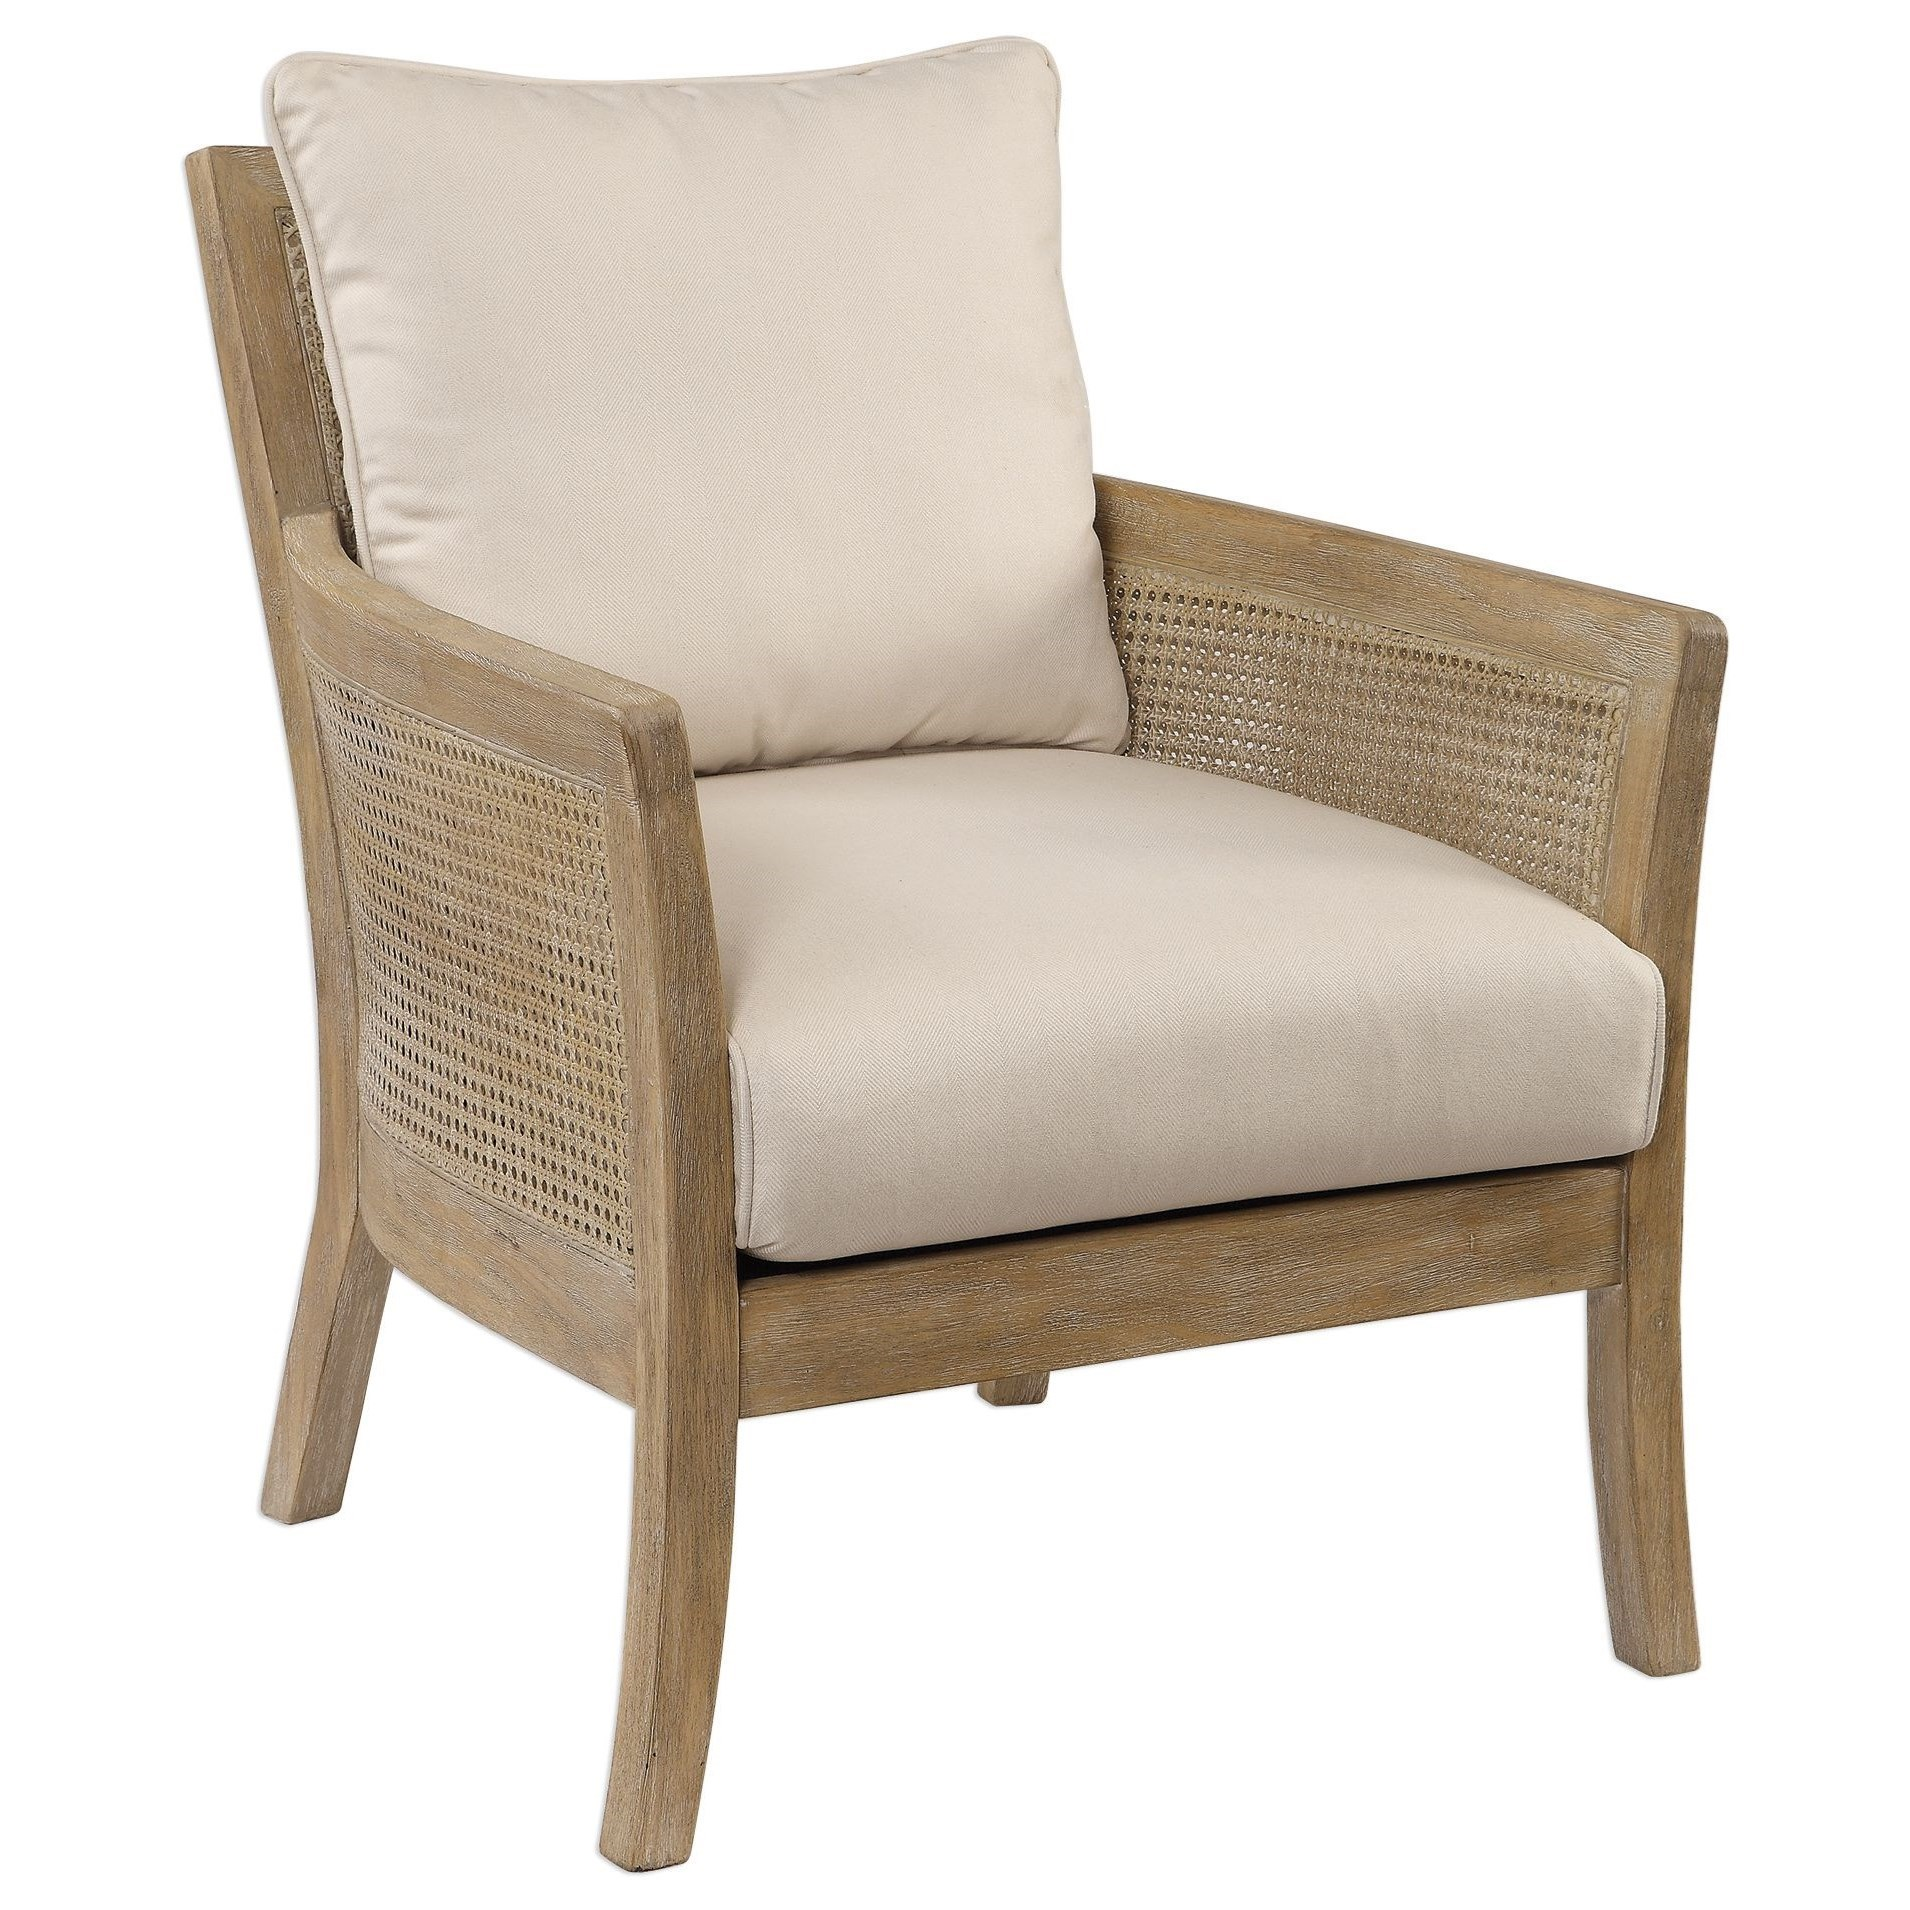 Accent Furniture - Accent Chairs Encore Natural Armchair by Uttermost at Furniture Superstore - Rochester, MN